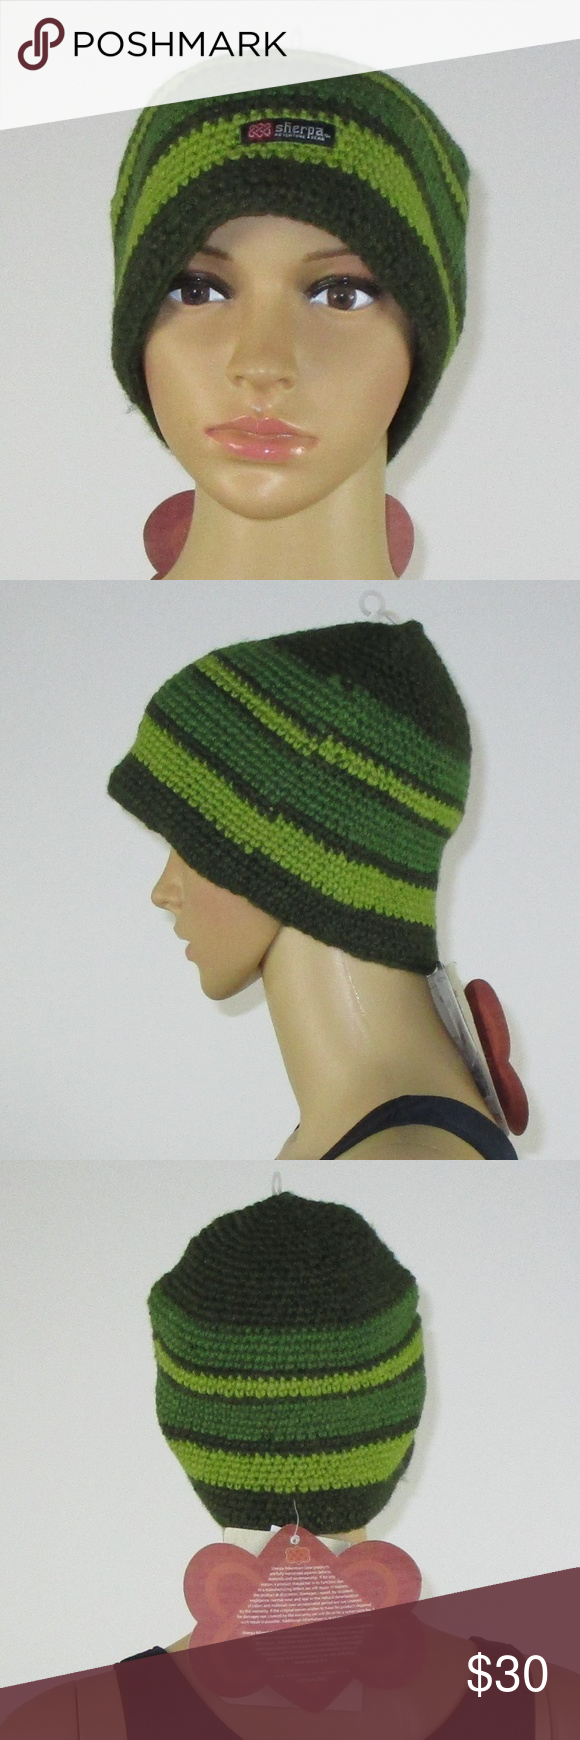 ea6f0921ab7 Sherpa Adventure Gear Green Striped Wool Hat NWT This listing is for a Sherpa  Adventure Gear